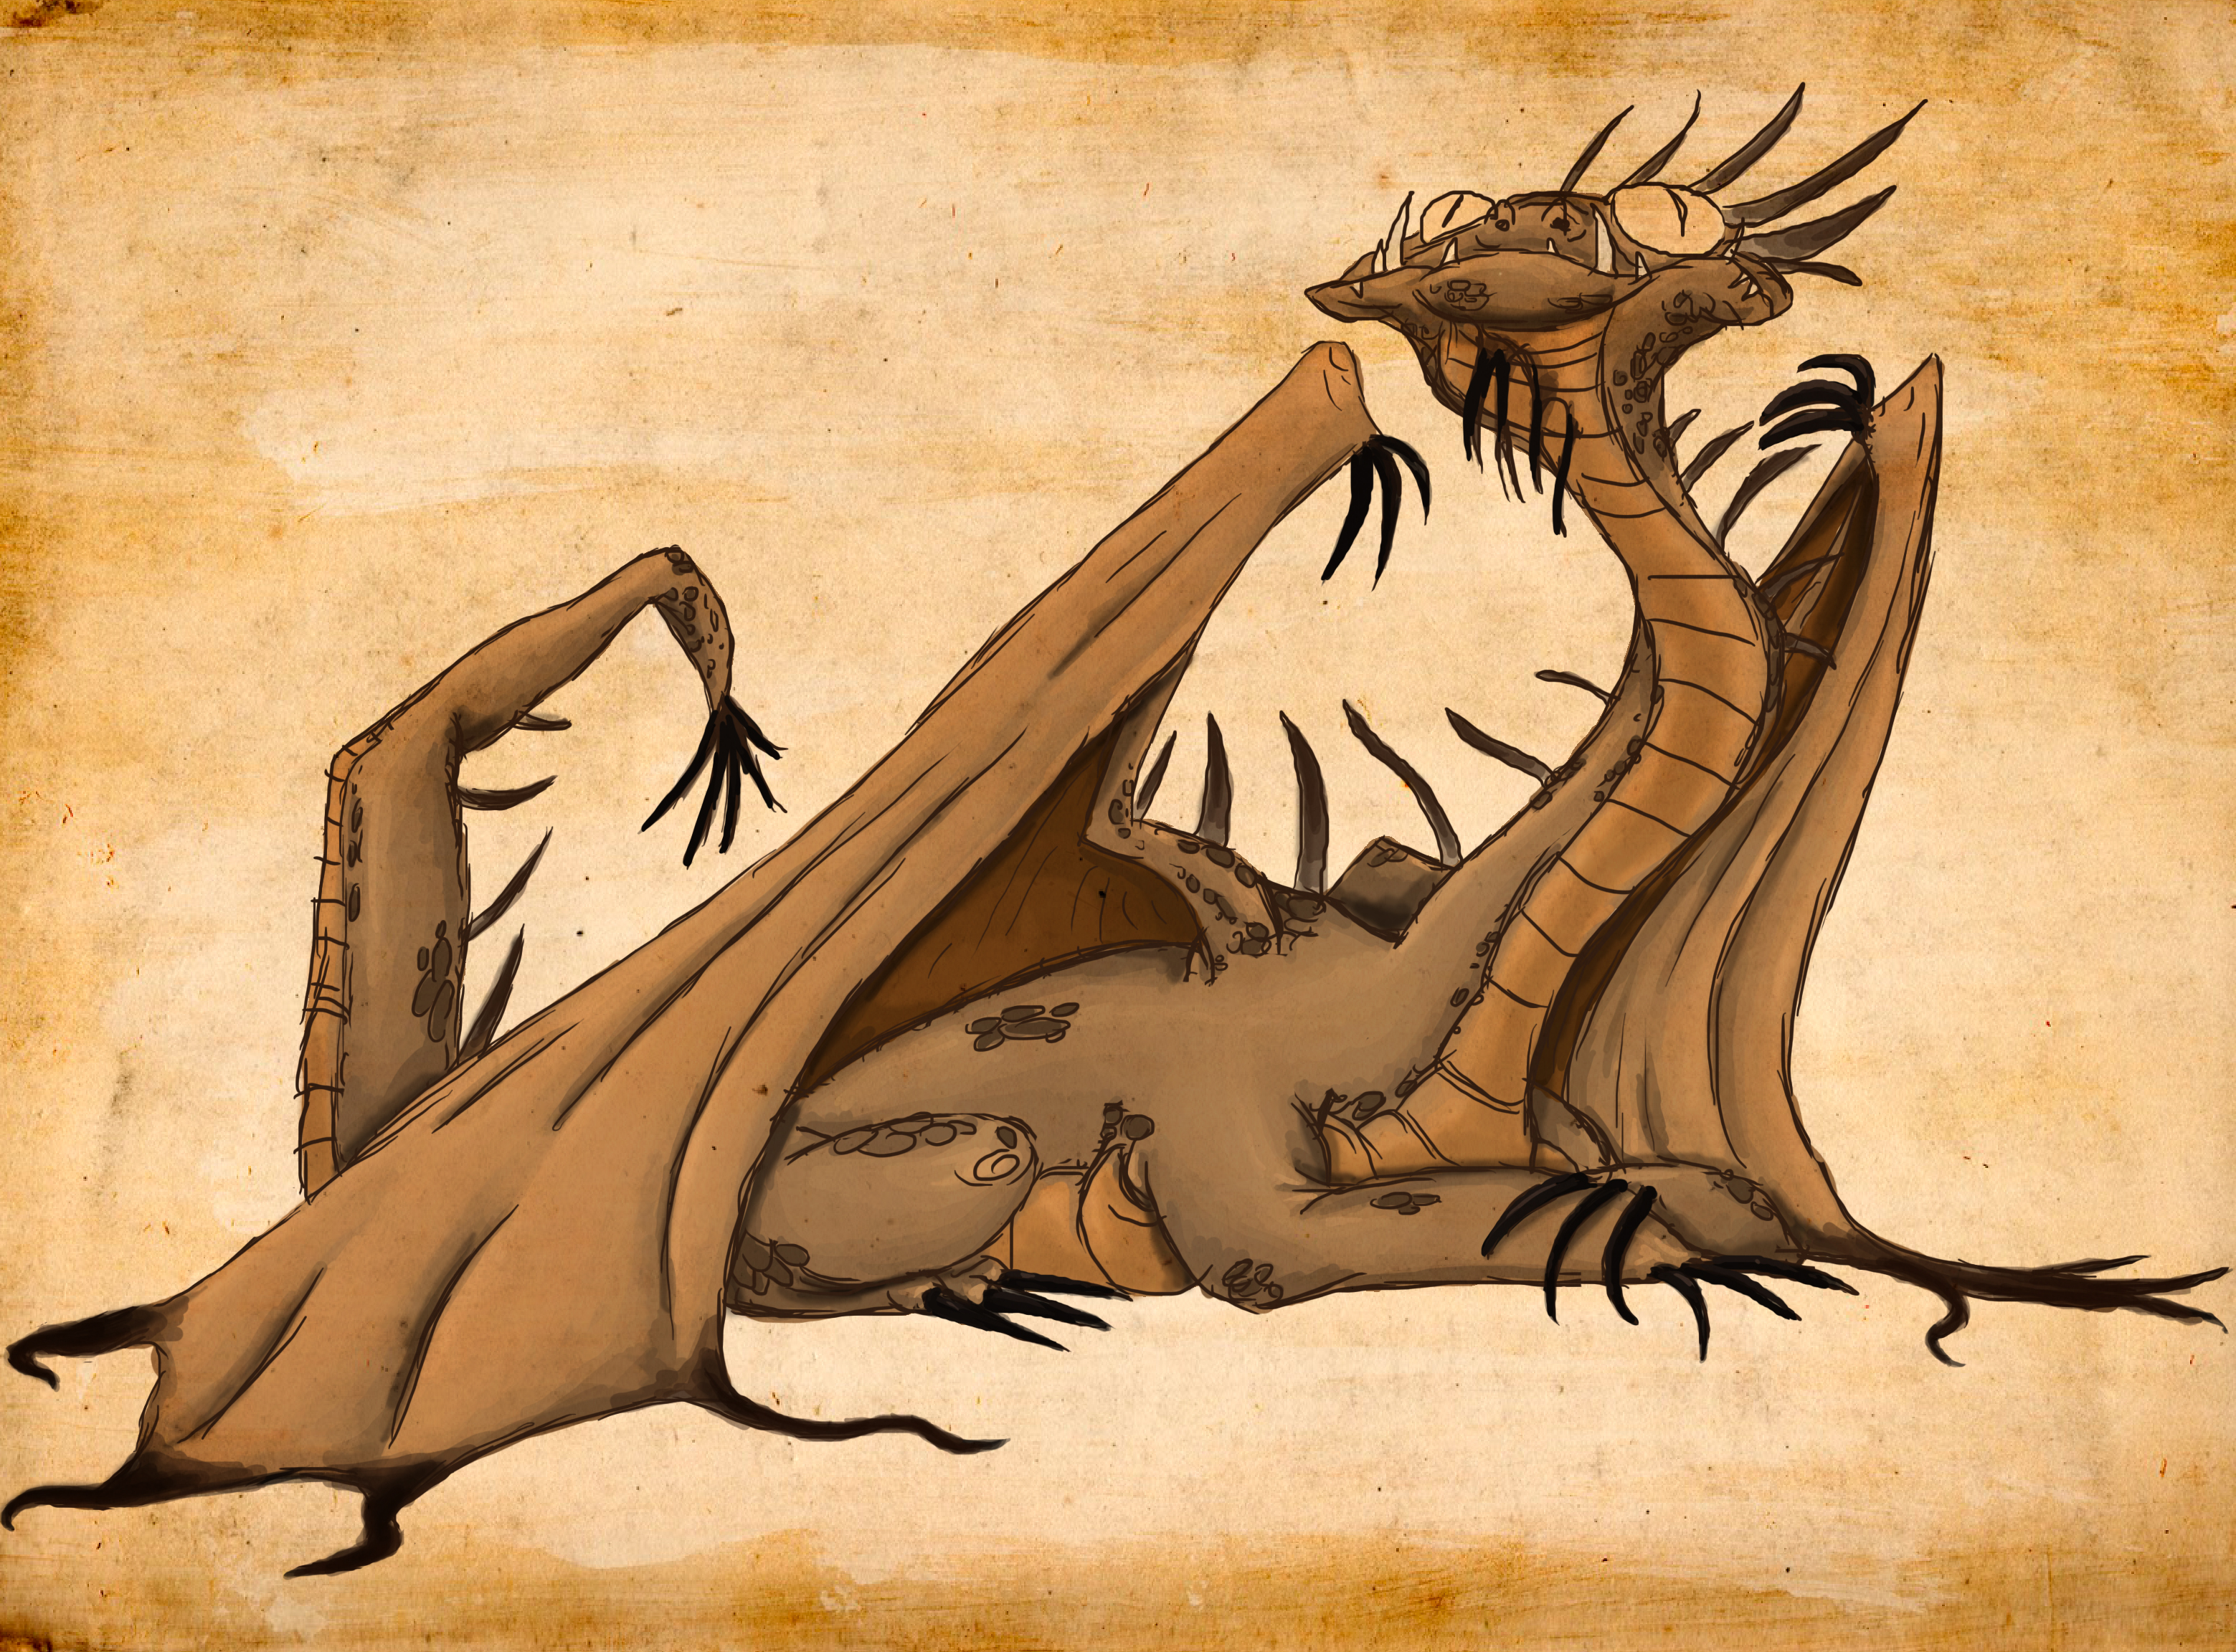 dragon, character, hand drawn, parchment, digital painting